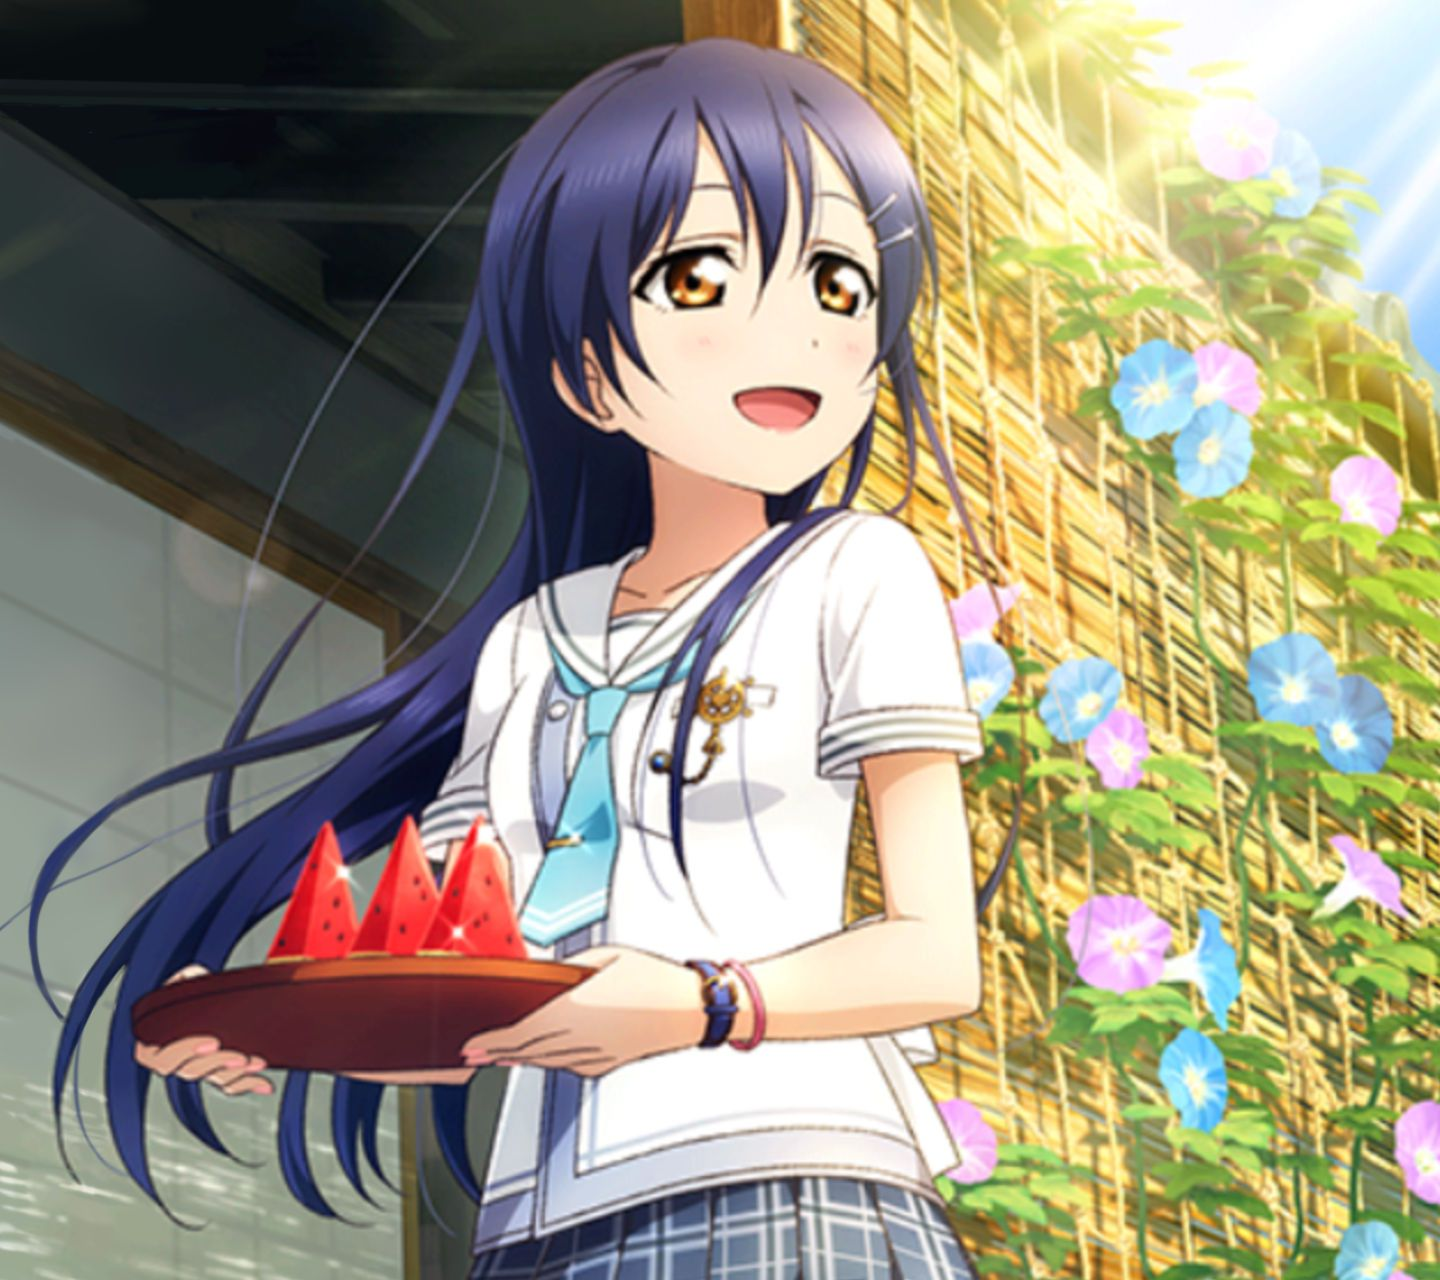 24113_lovelive_Android